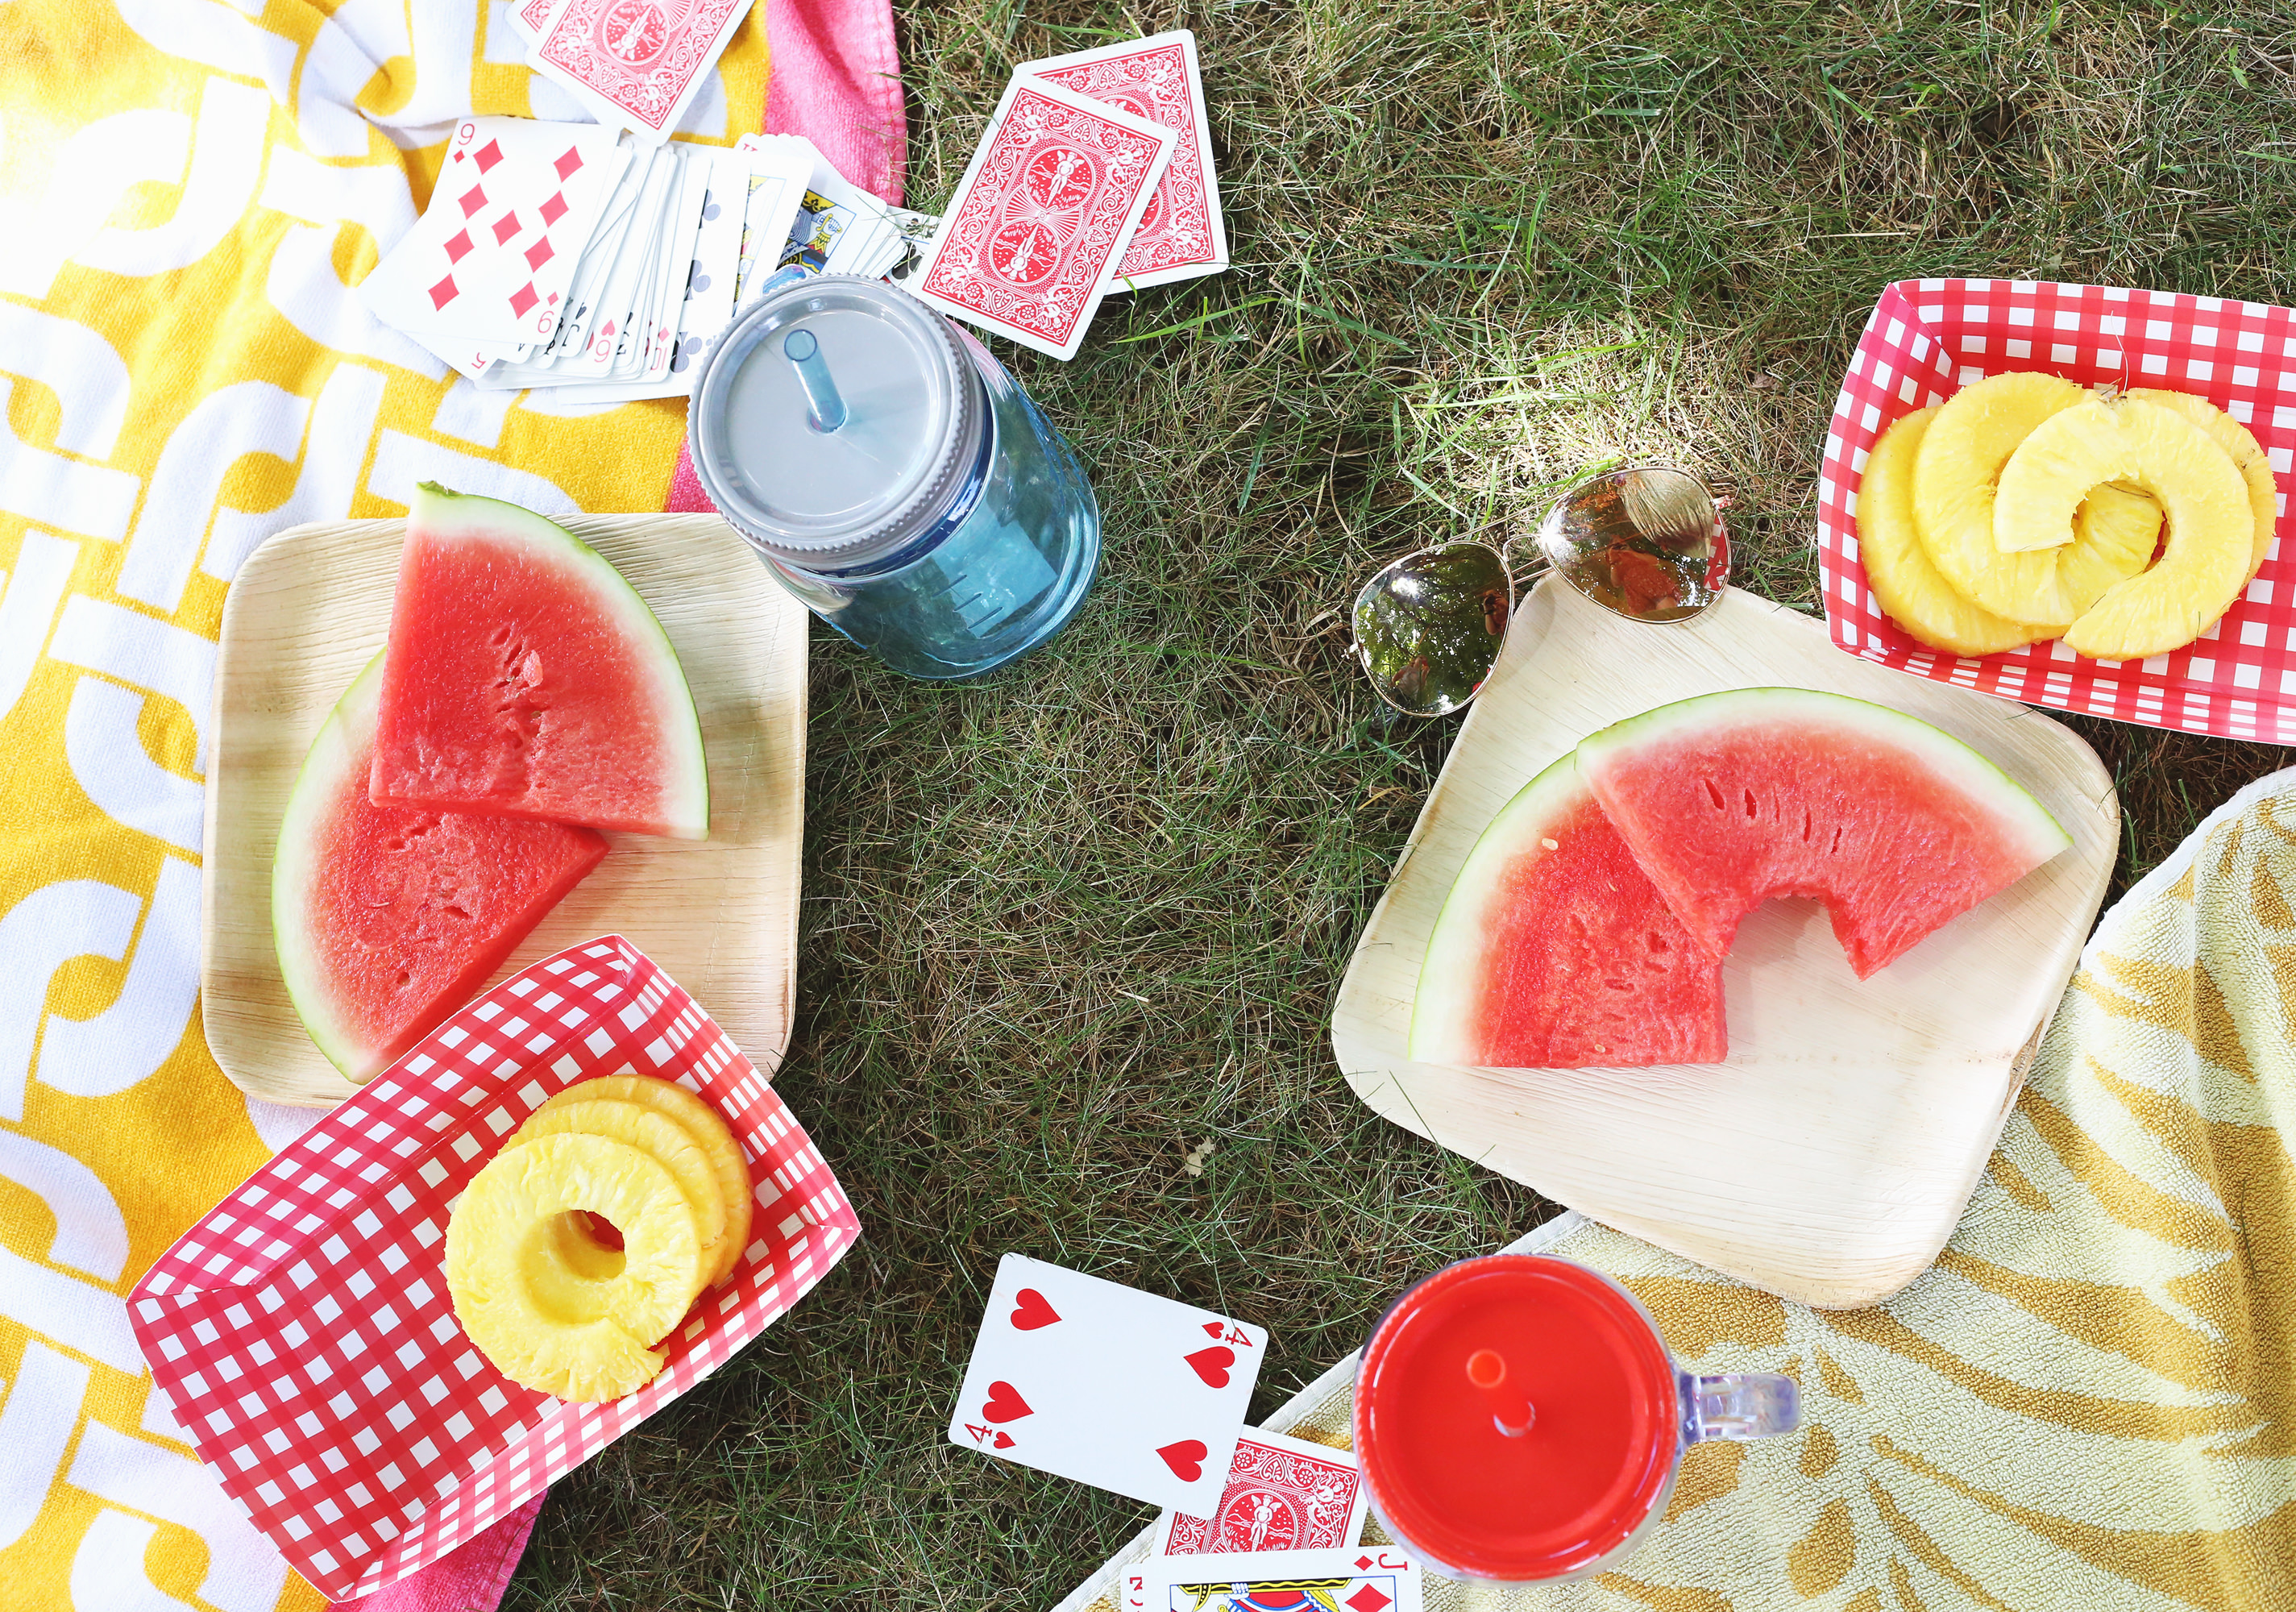 For August's Happy Mail theme, we're taking it outside! Perfect picnic ideas via Lily & Val Living!